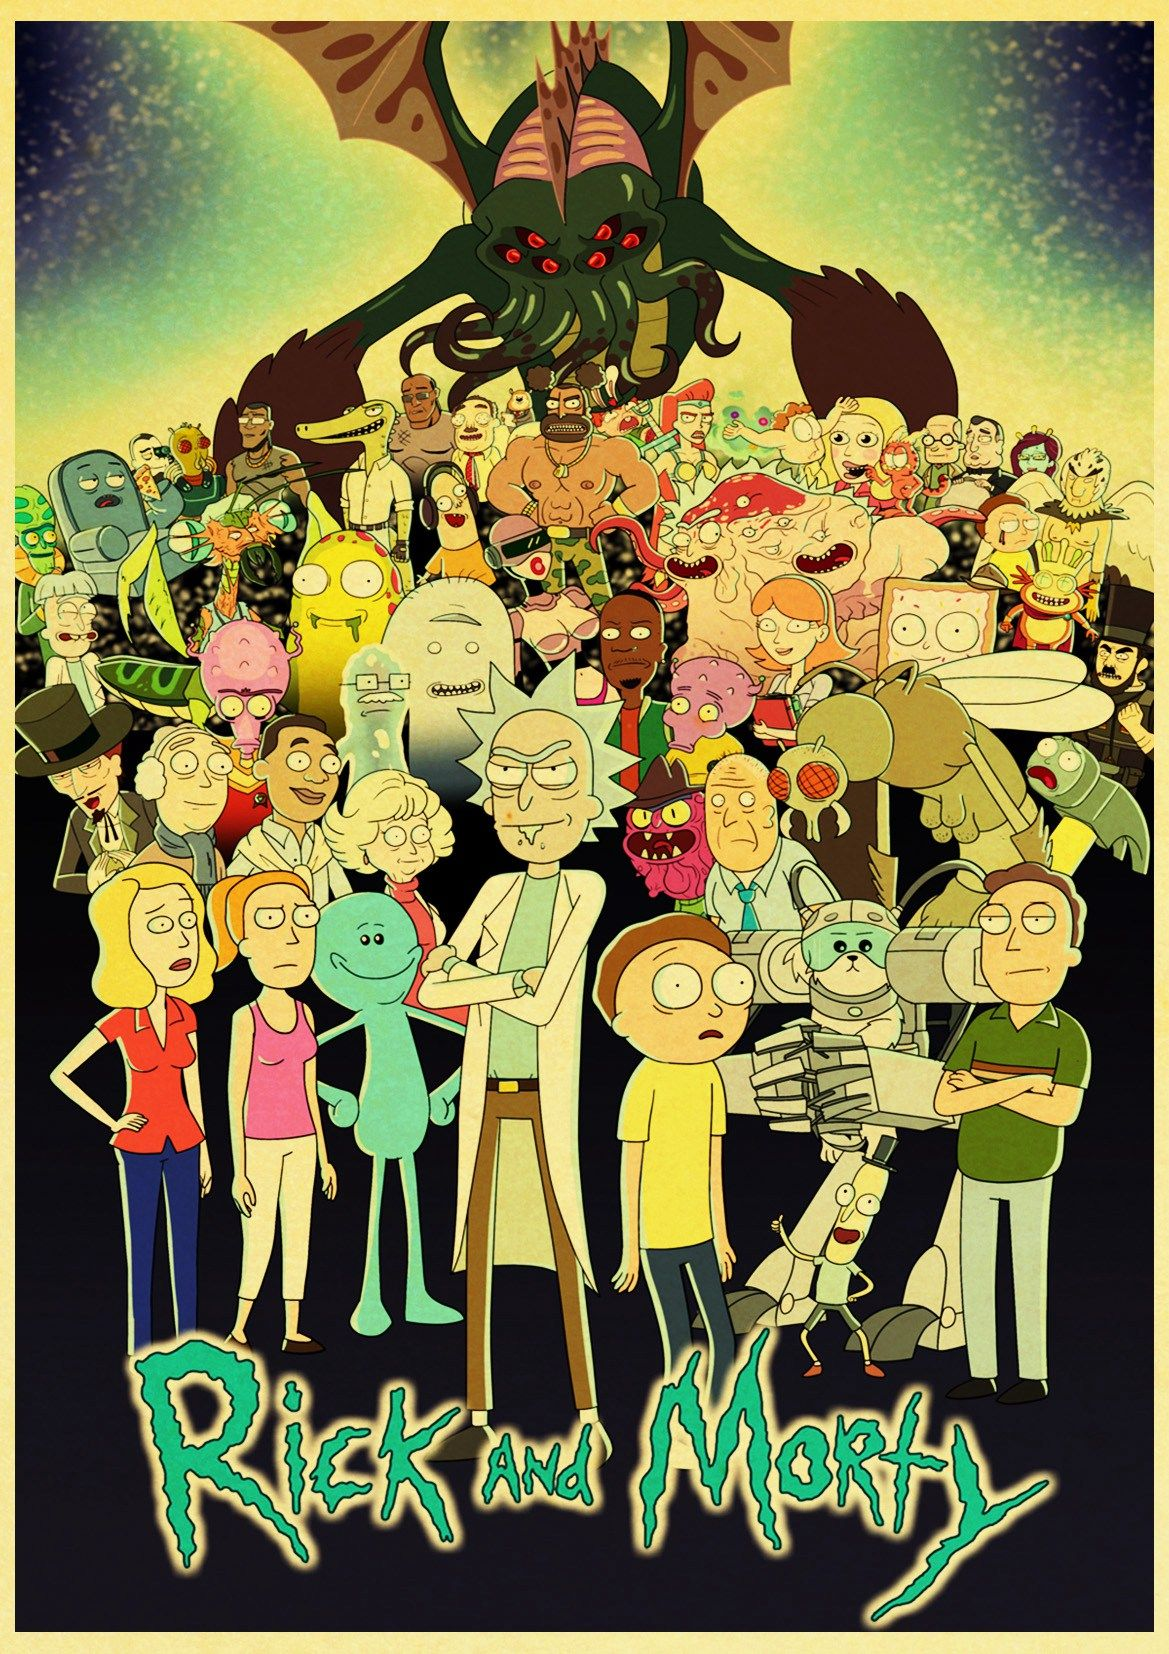 Cartoon Rick And Morty Retro Poster in 2020 Rick morty poster 1169x1654